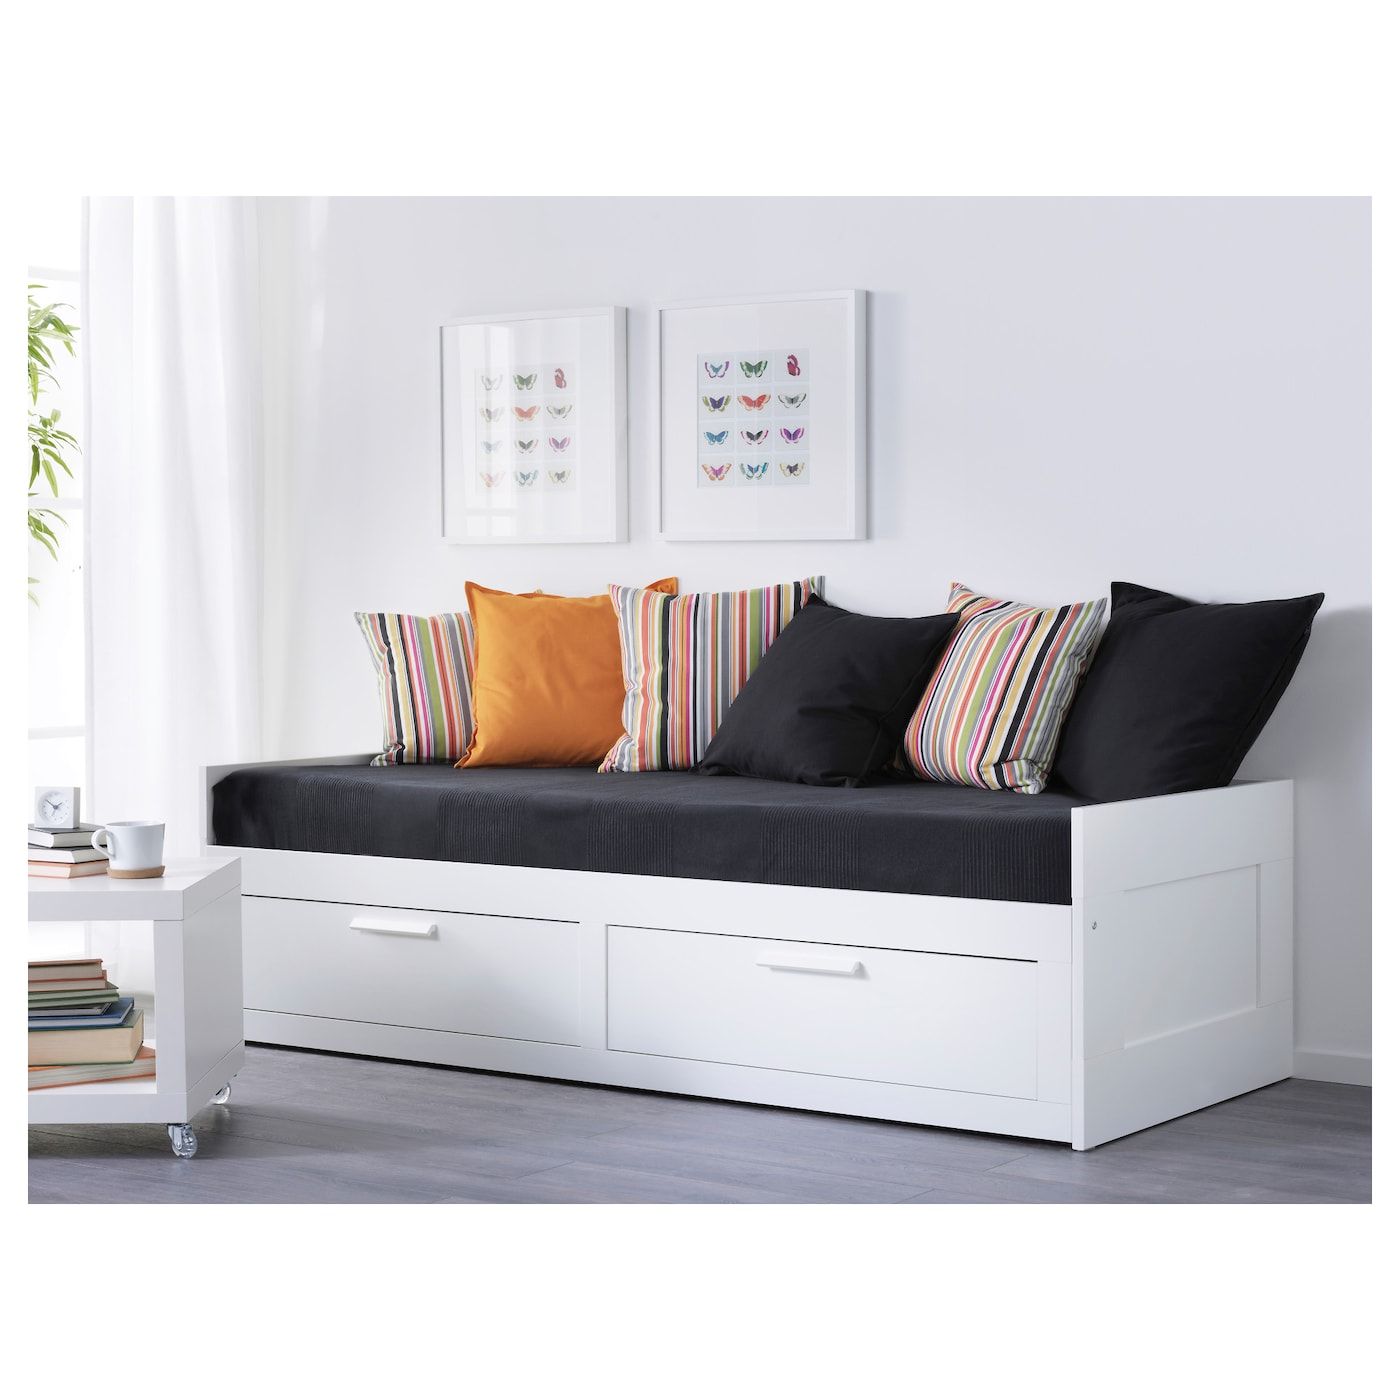 Brimnes day bed w 2 drawers 2 mattresses white moshult for Ikea day bed